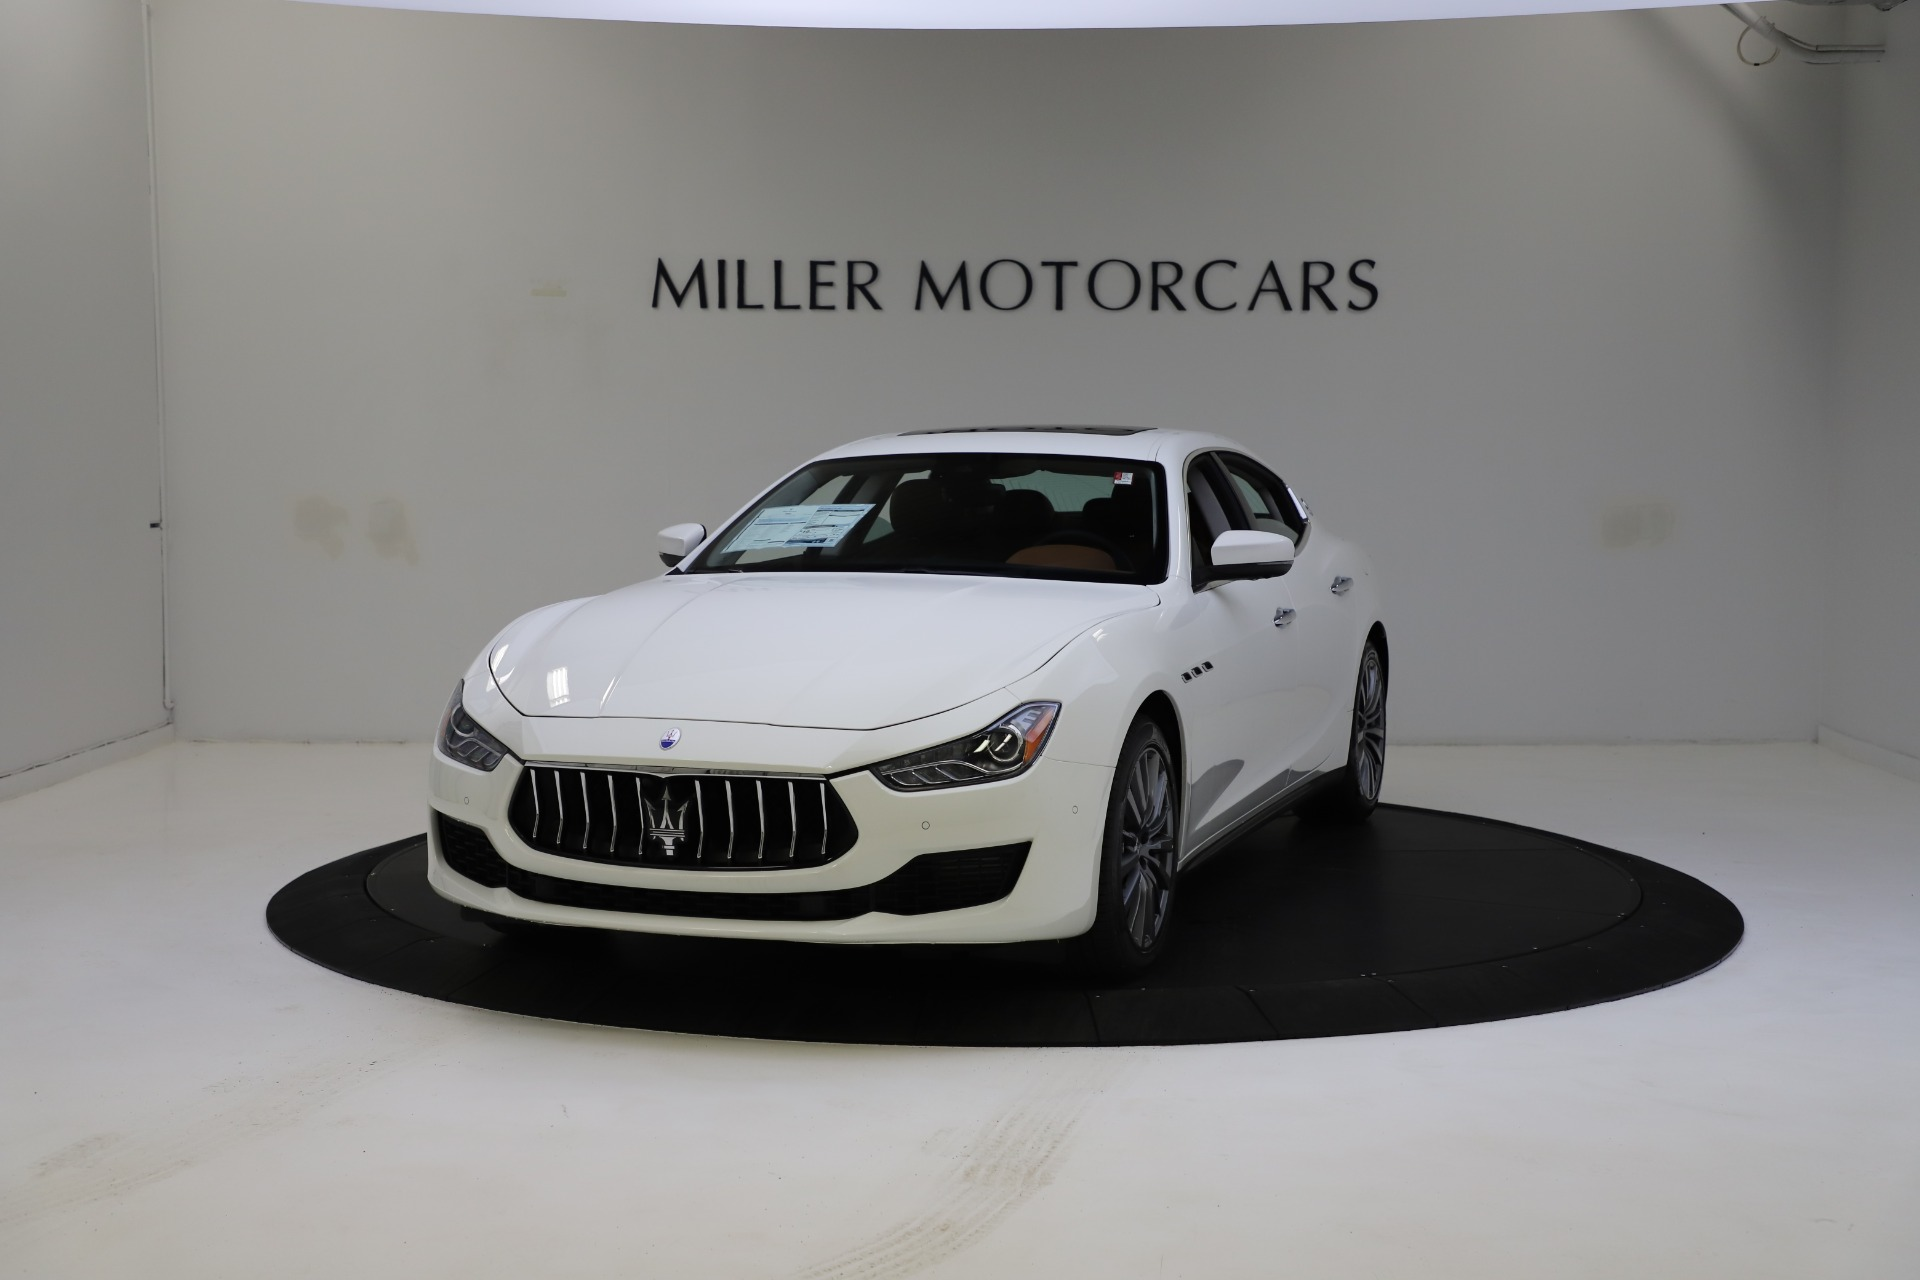 New 2021 Maserati Ghibli S Q4 for sale $85,754 at Bentley Greenwich in Greenwich CT 06830 1